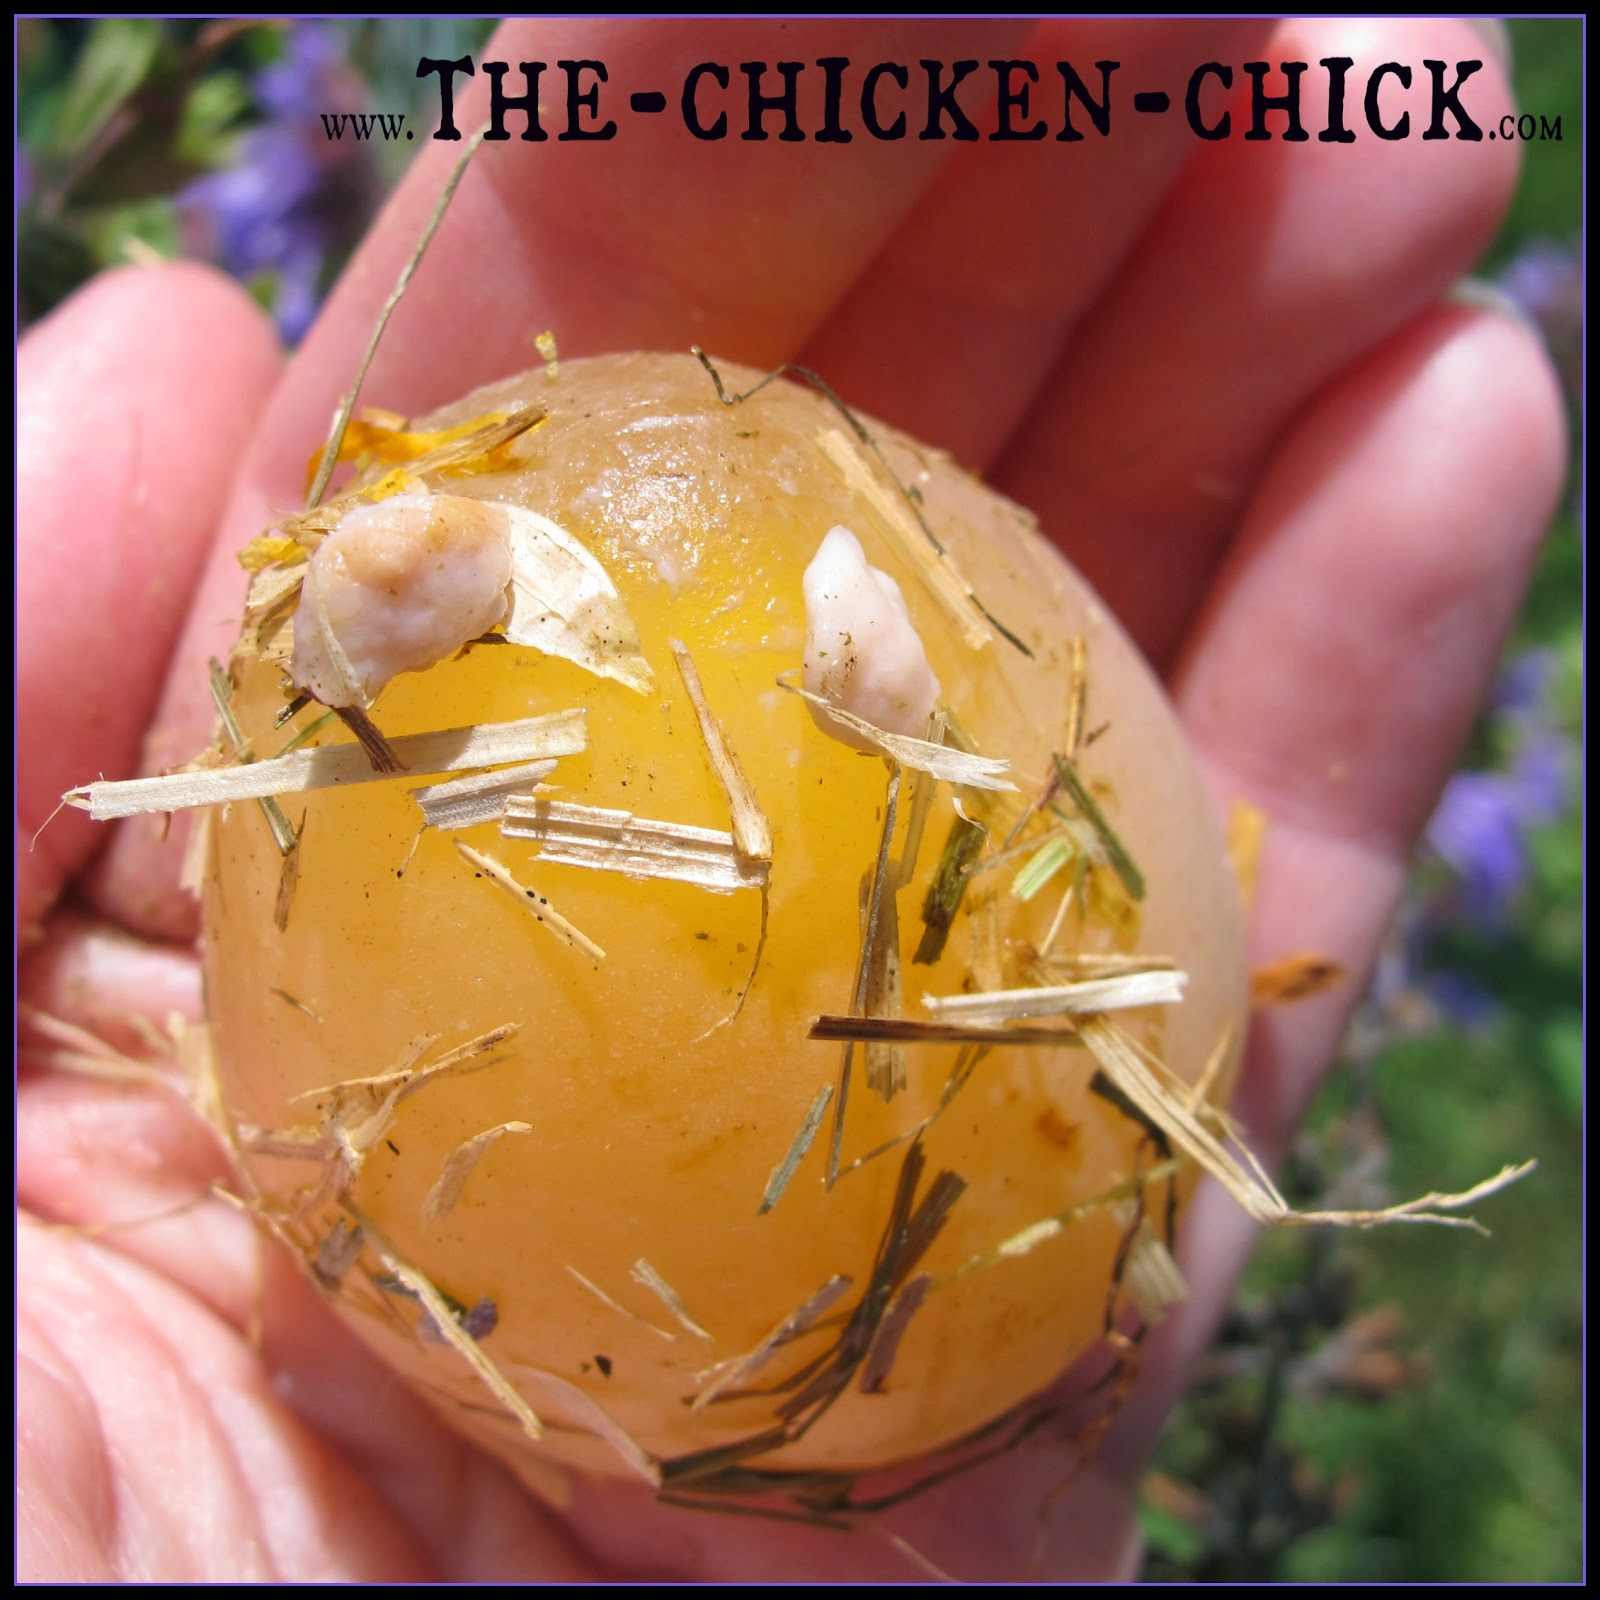 By the time a lash egg is found, the problem has been raging inside the hen for months and the prognosis for recovery is poor. Most hens will not survive more than 6 months with Salpingitis. According to Dr. McKillop If a hen does survive, she is unlikely to return to normal egg laying.